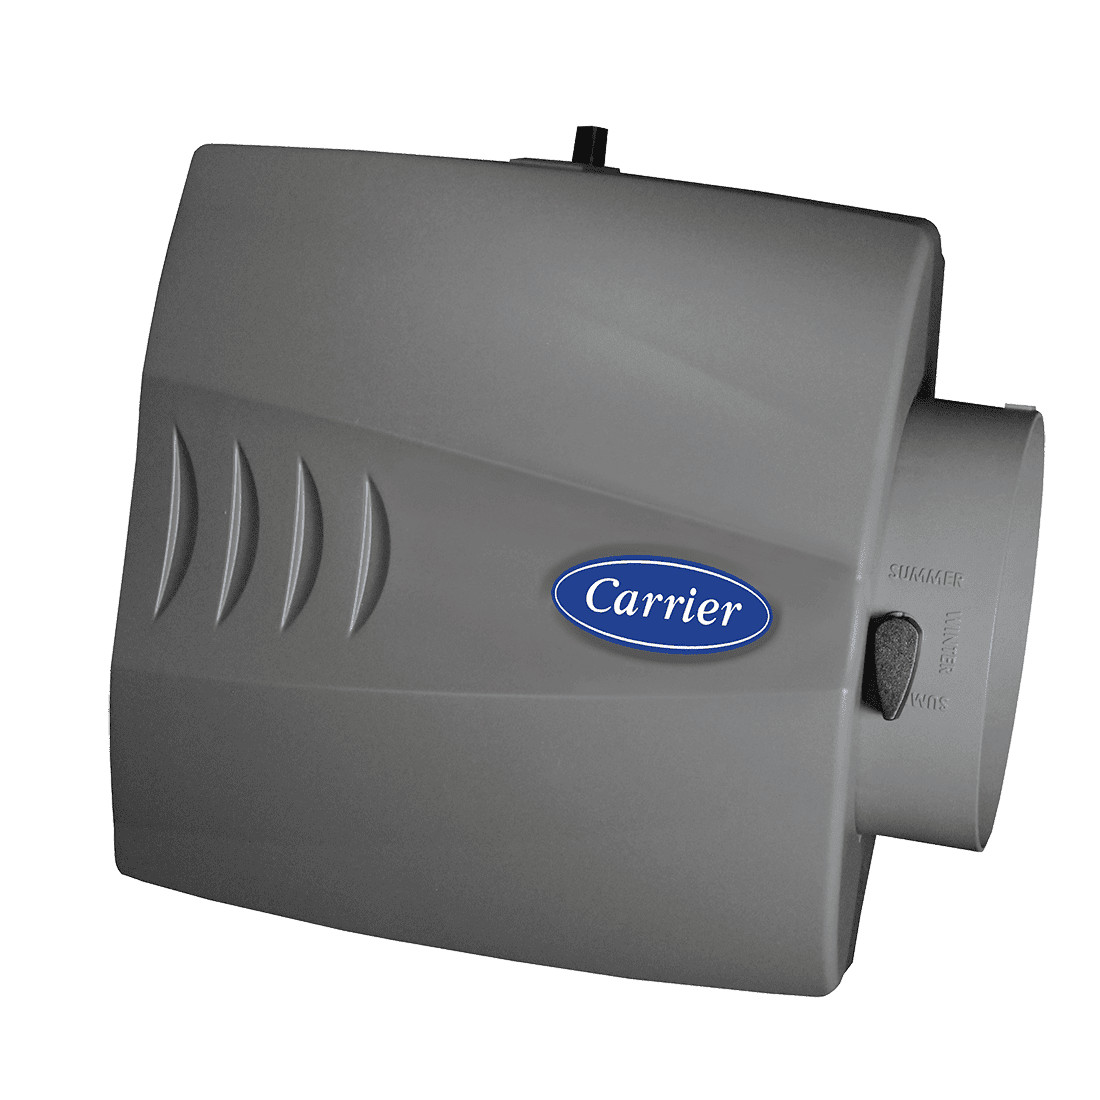 PERFORMANCE™ LARGE BYPASS HUMIDIFIER Model: HUMCRLBP